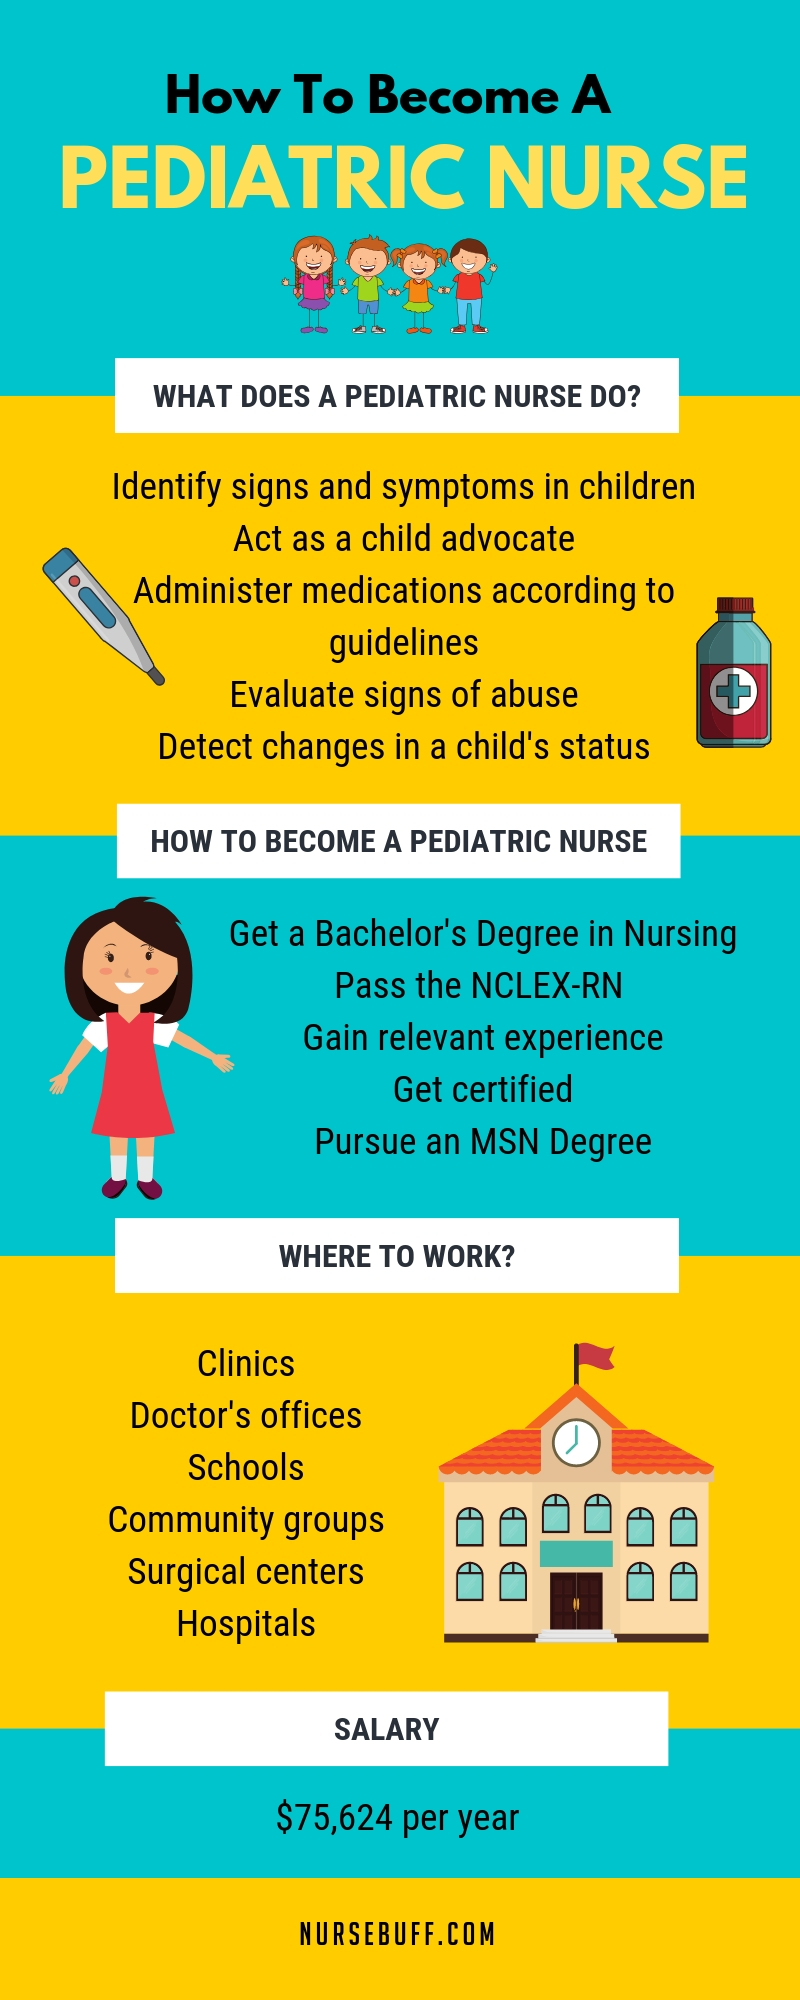 how to become a pediatric nurse infographic